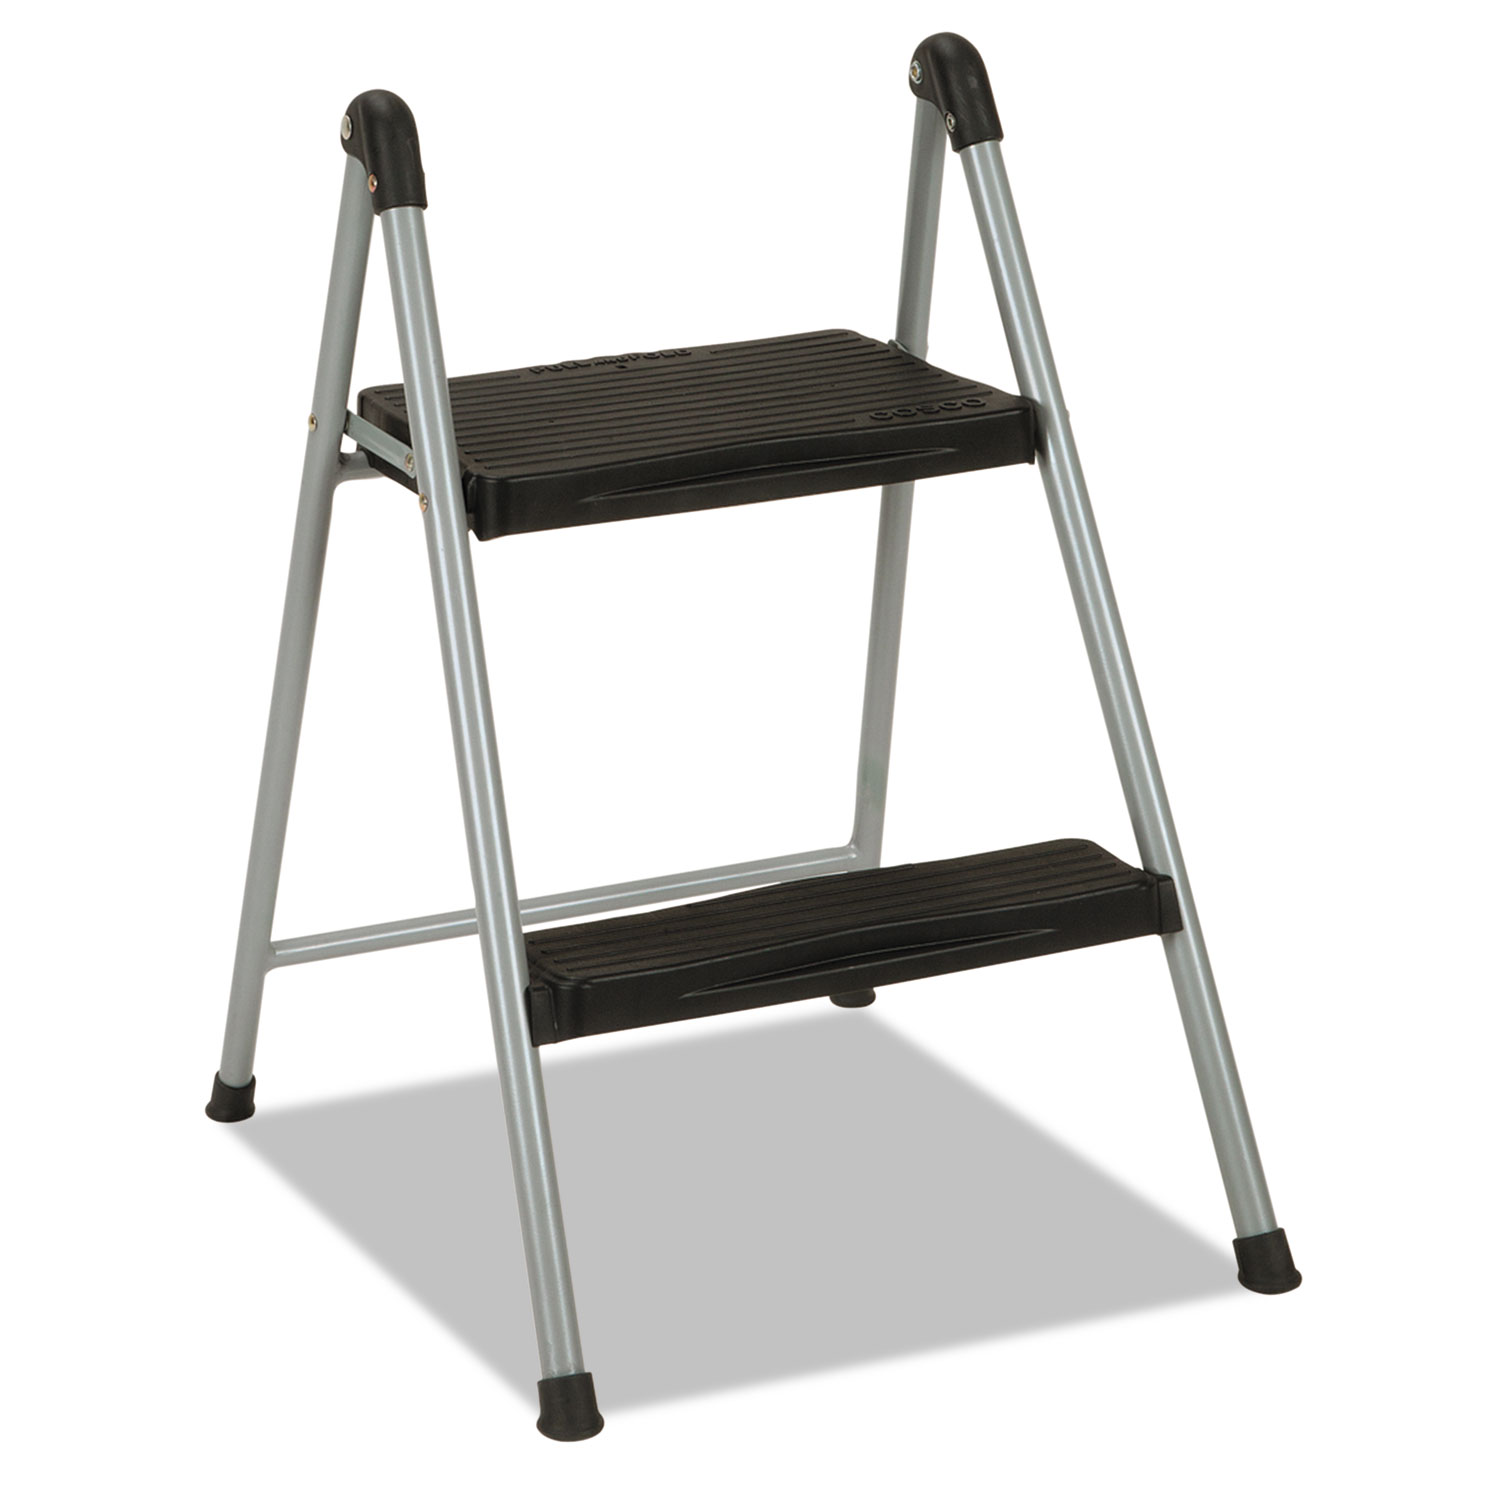 Enjoyable Folding Step Stool 2 Step 200Lb 16 9 10 Working Height Platinum Black Inzonedesignstudio Interior Chair Design Inzonedesignstudiocom